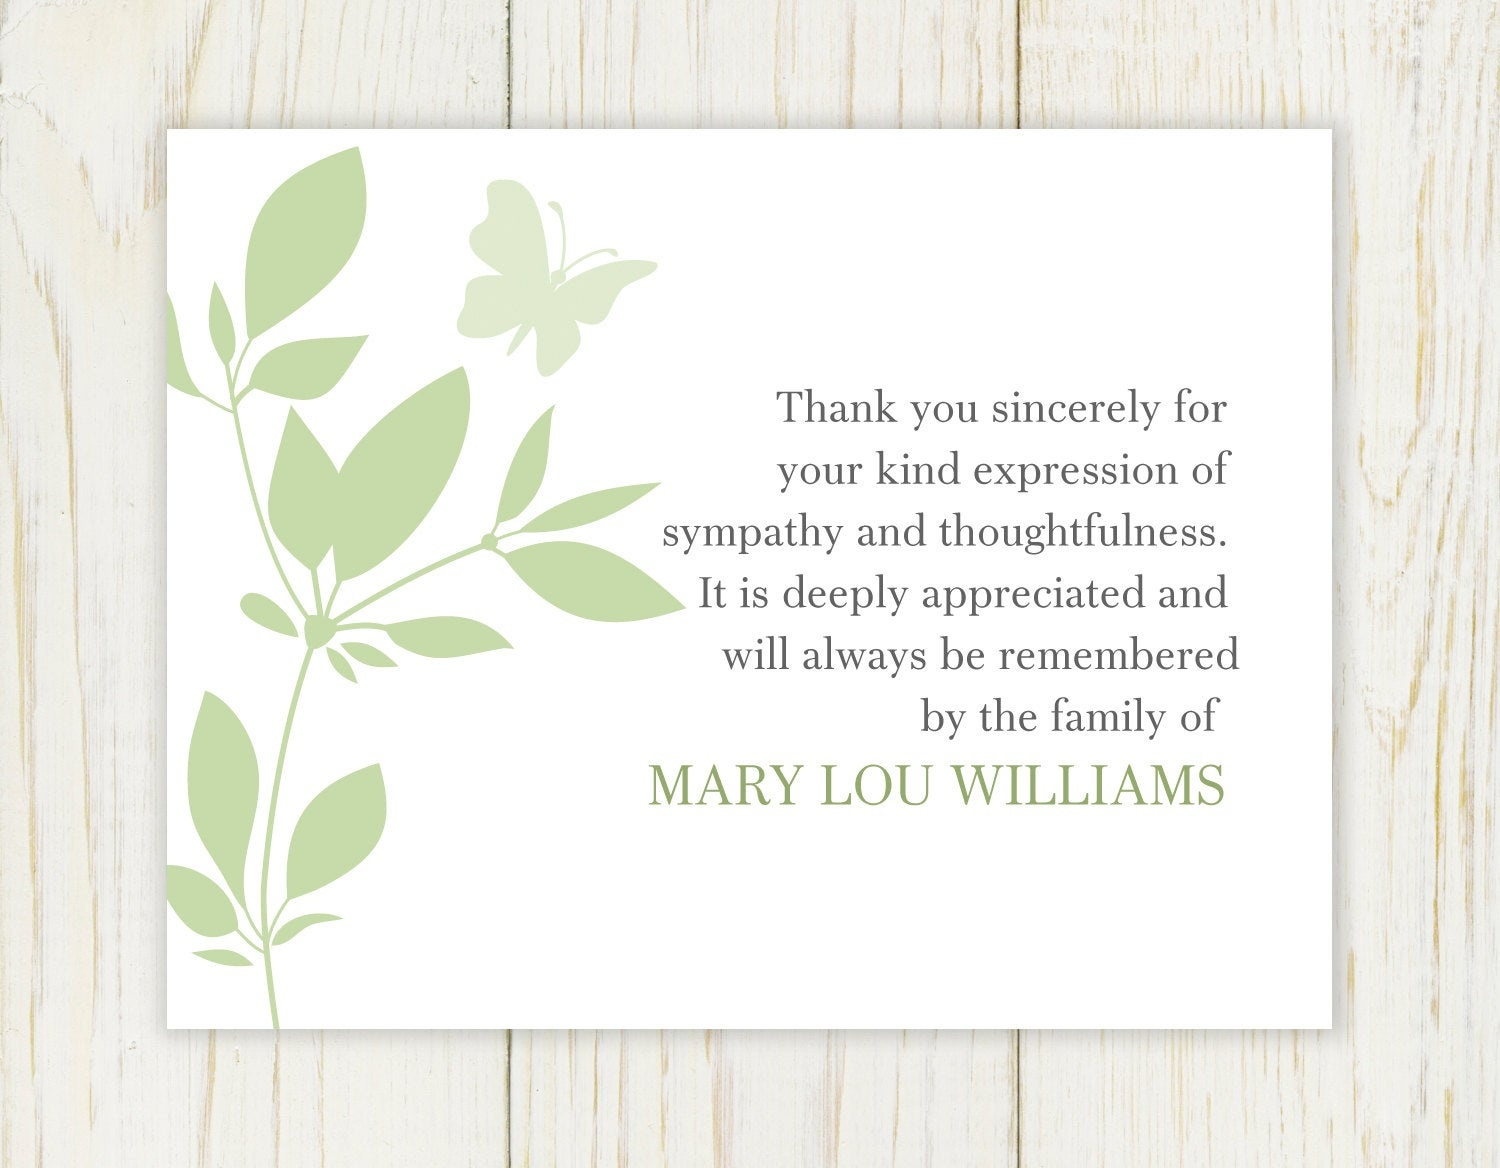 Thank You Funeral Cards - Kaza.psstech.co - Thank You Sympathy Cards Free Printable